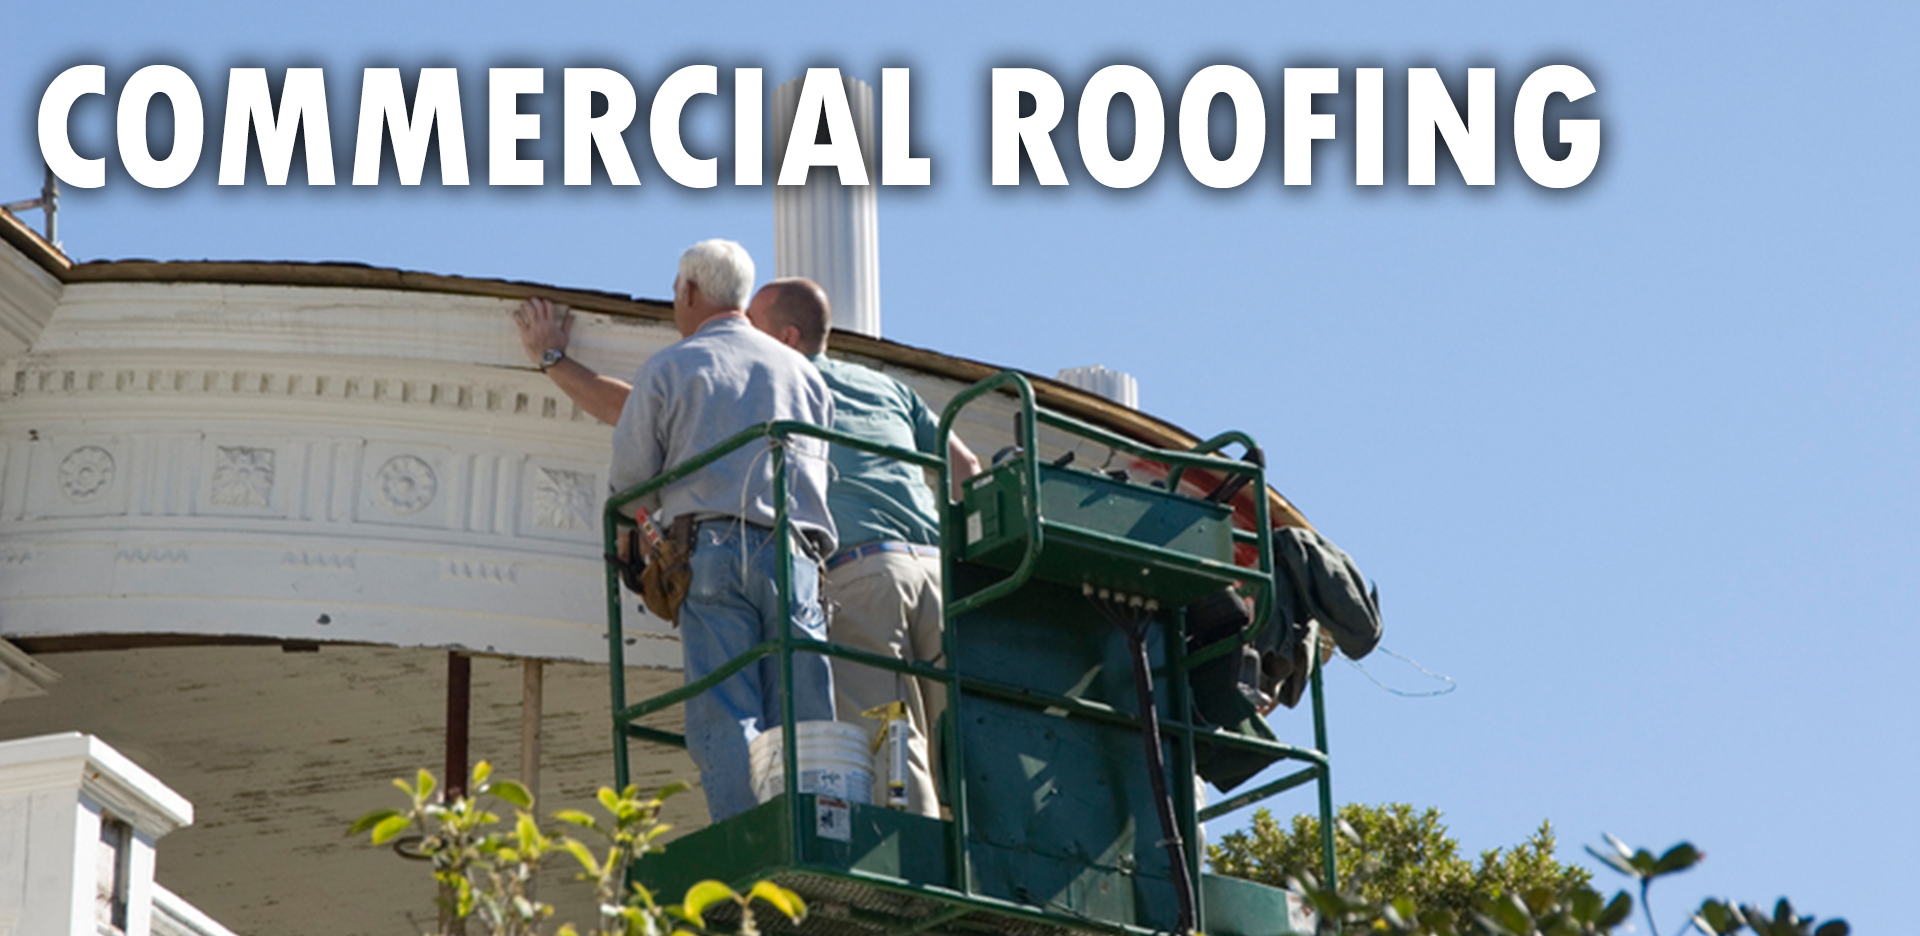 Copy of Commercial Roofing